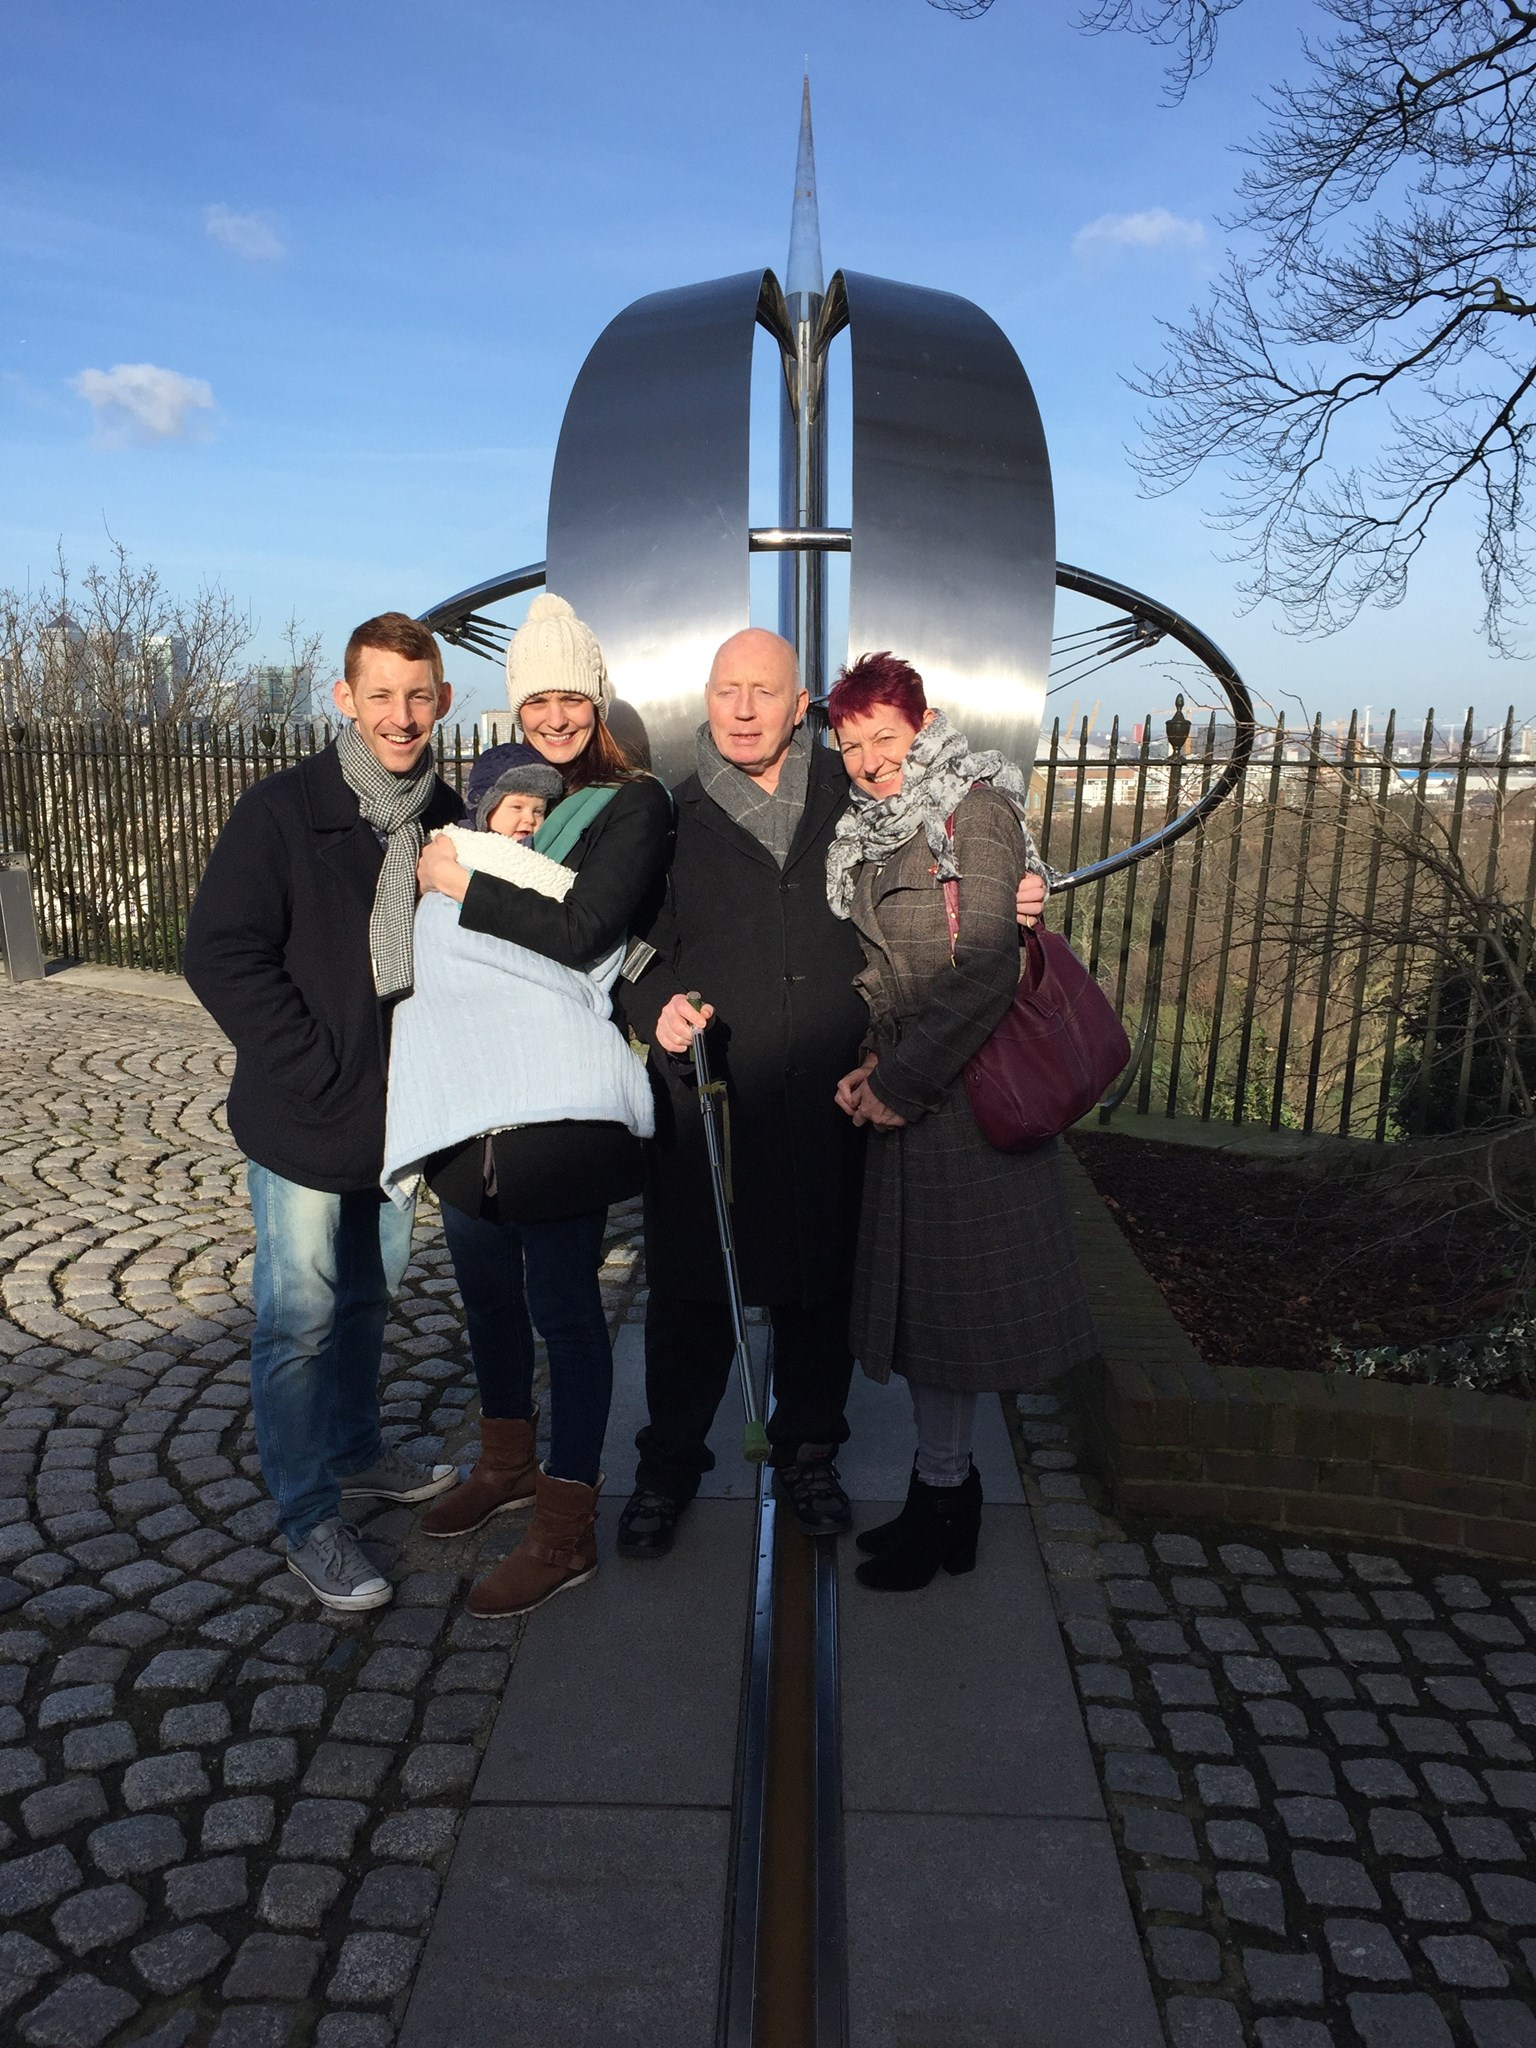 Family day out for Danny's 60th